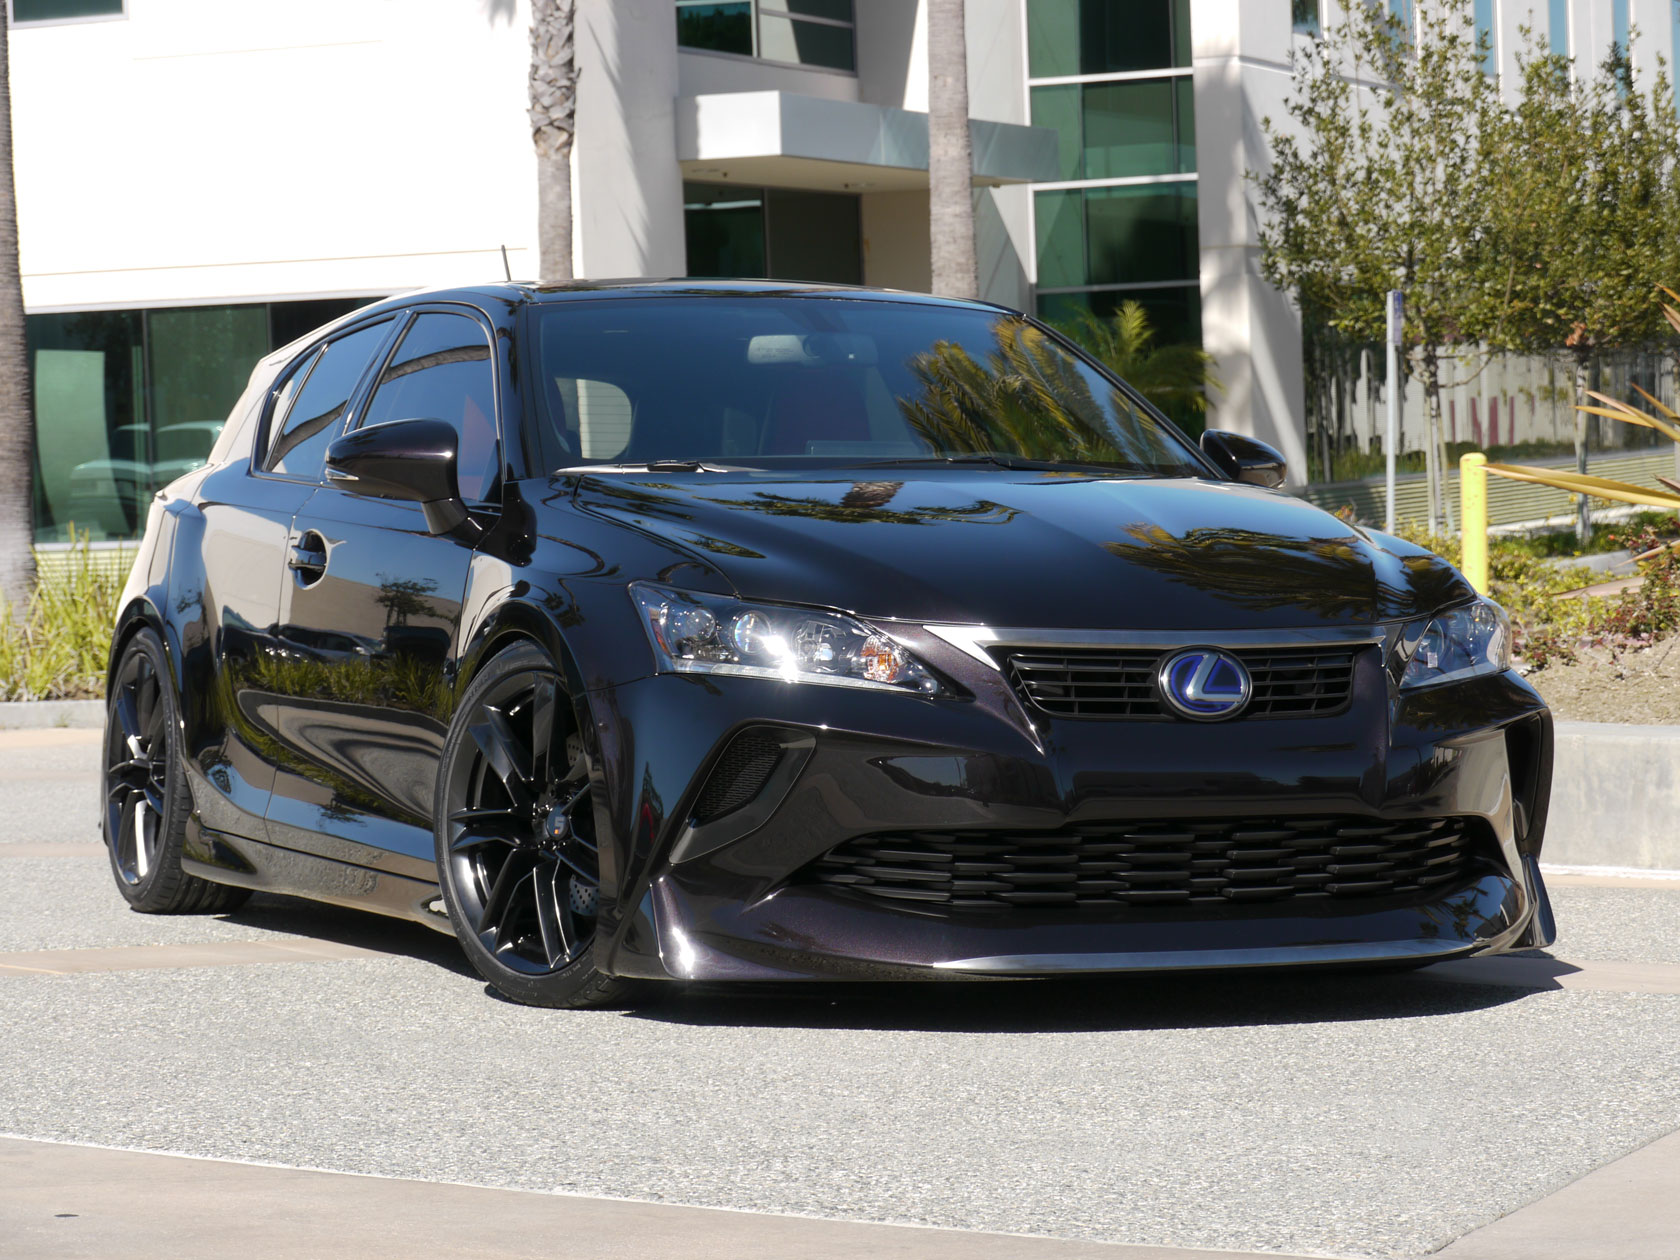 Lexus Tuning Widebody Ct 200h Project Ct By Five Axis